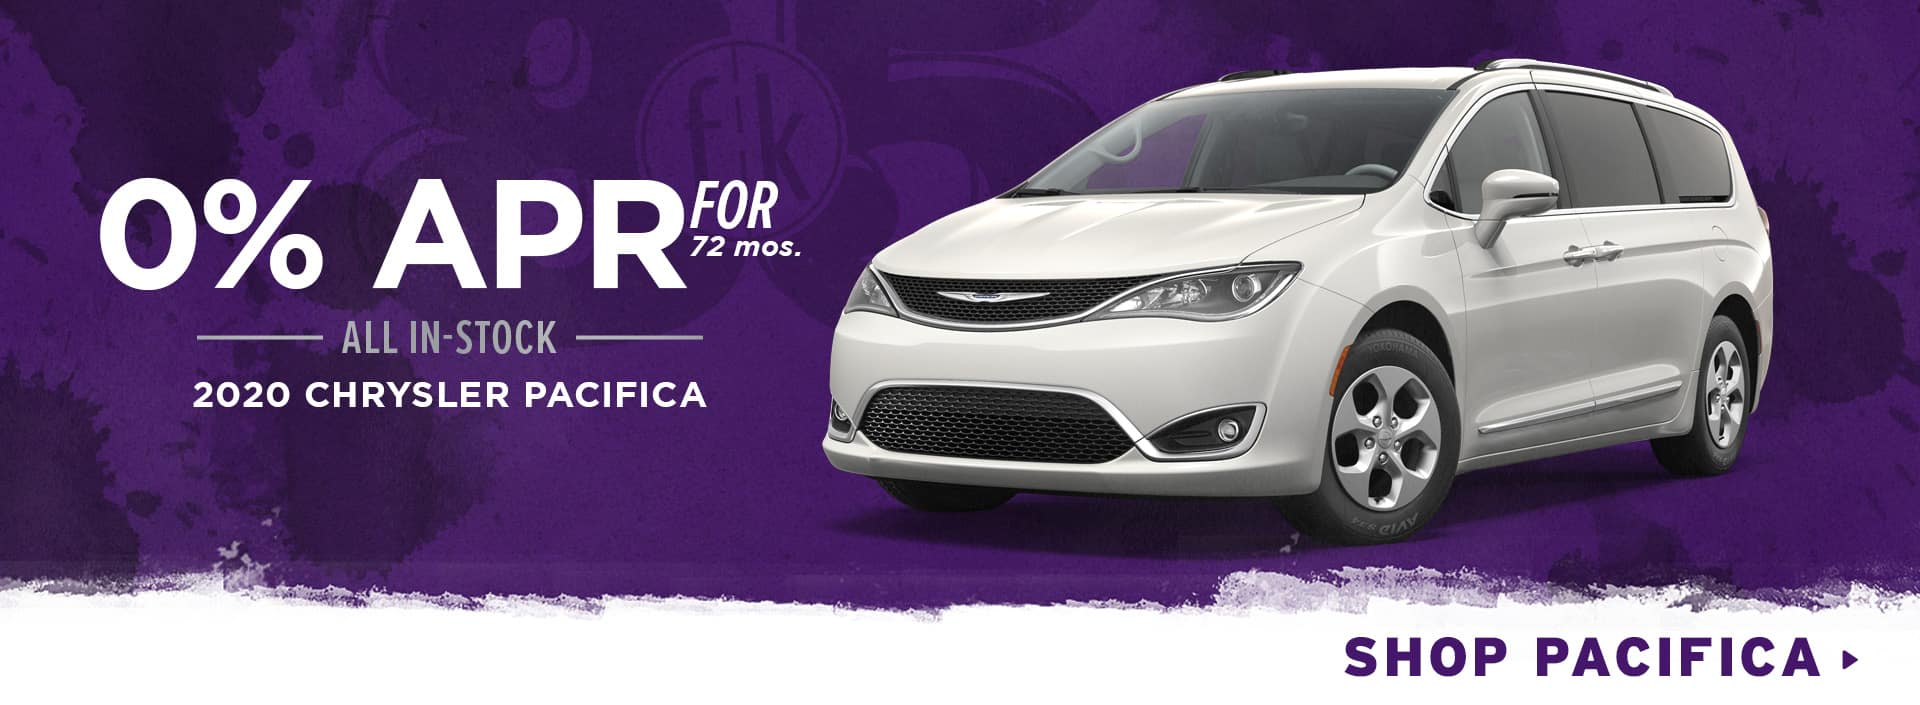 0% for 72 mos. All In-Stock 2020 Chrysler Pacifica